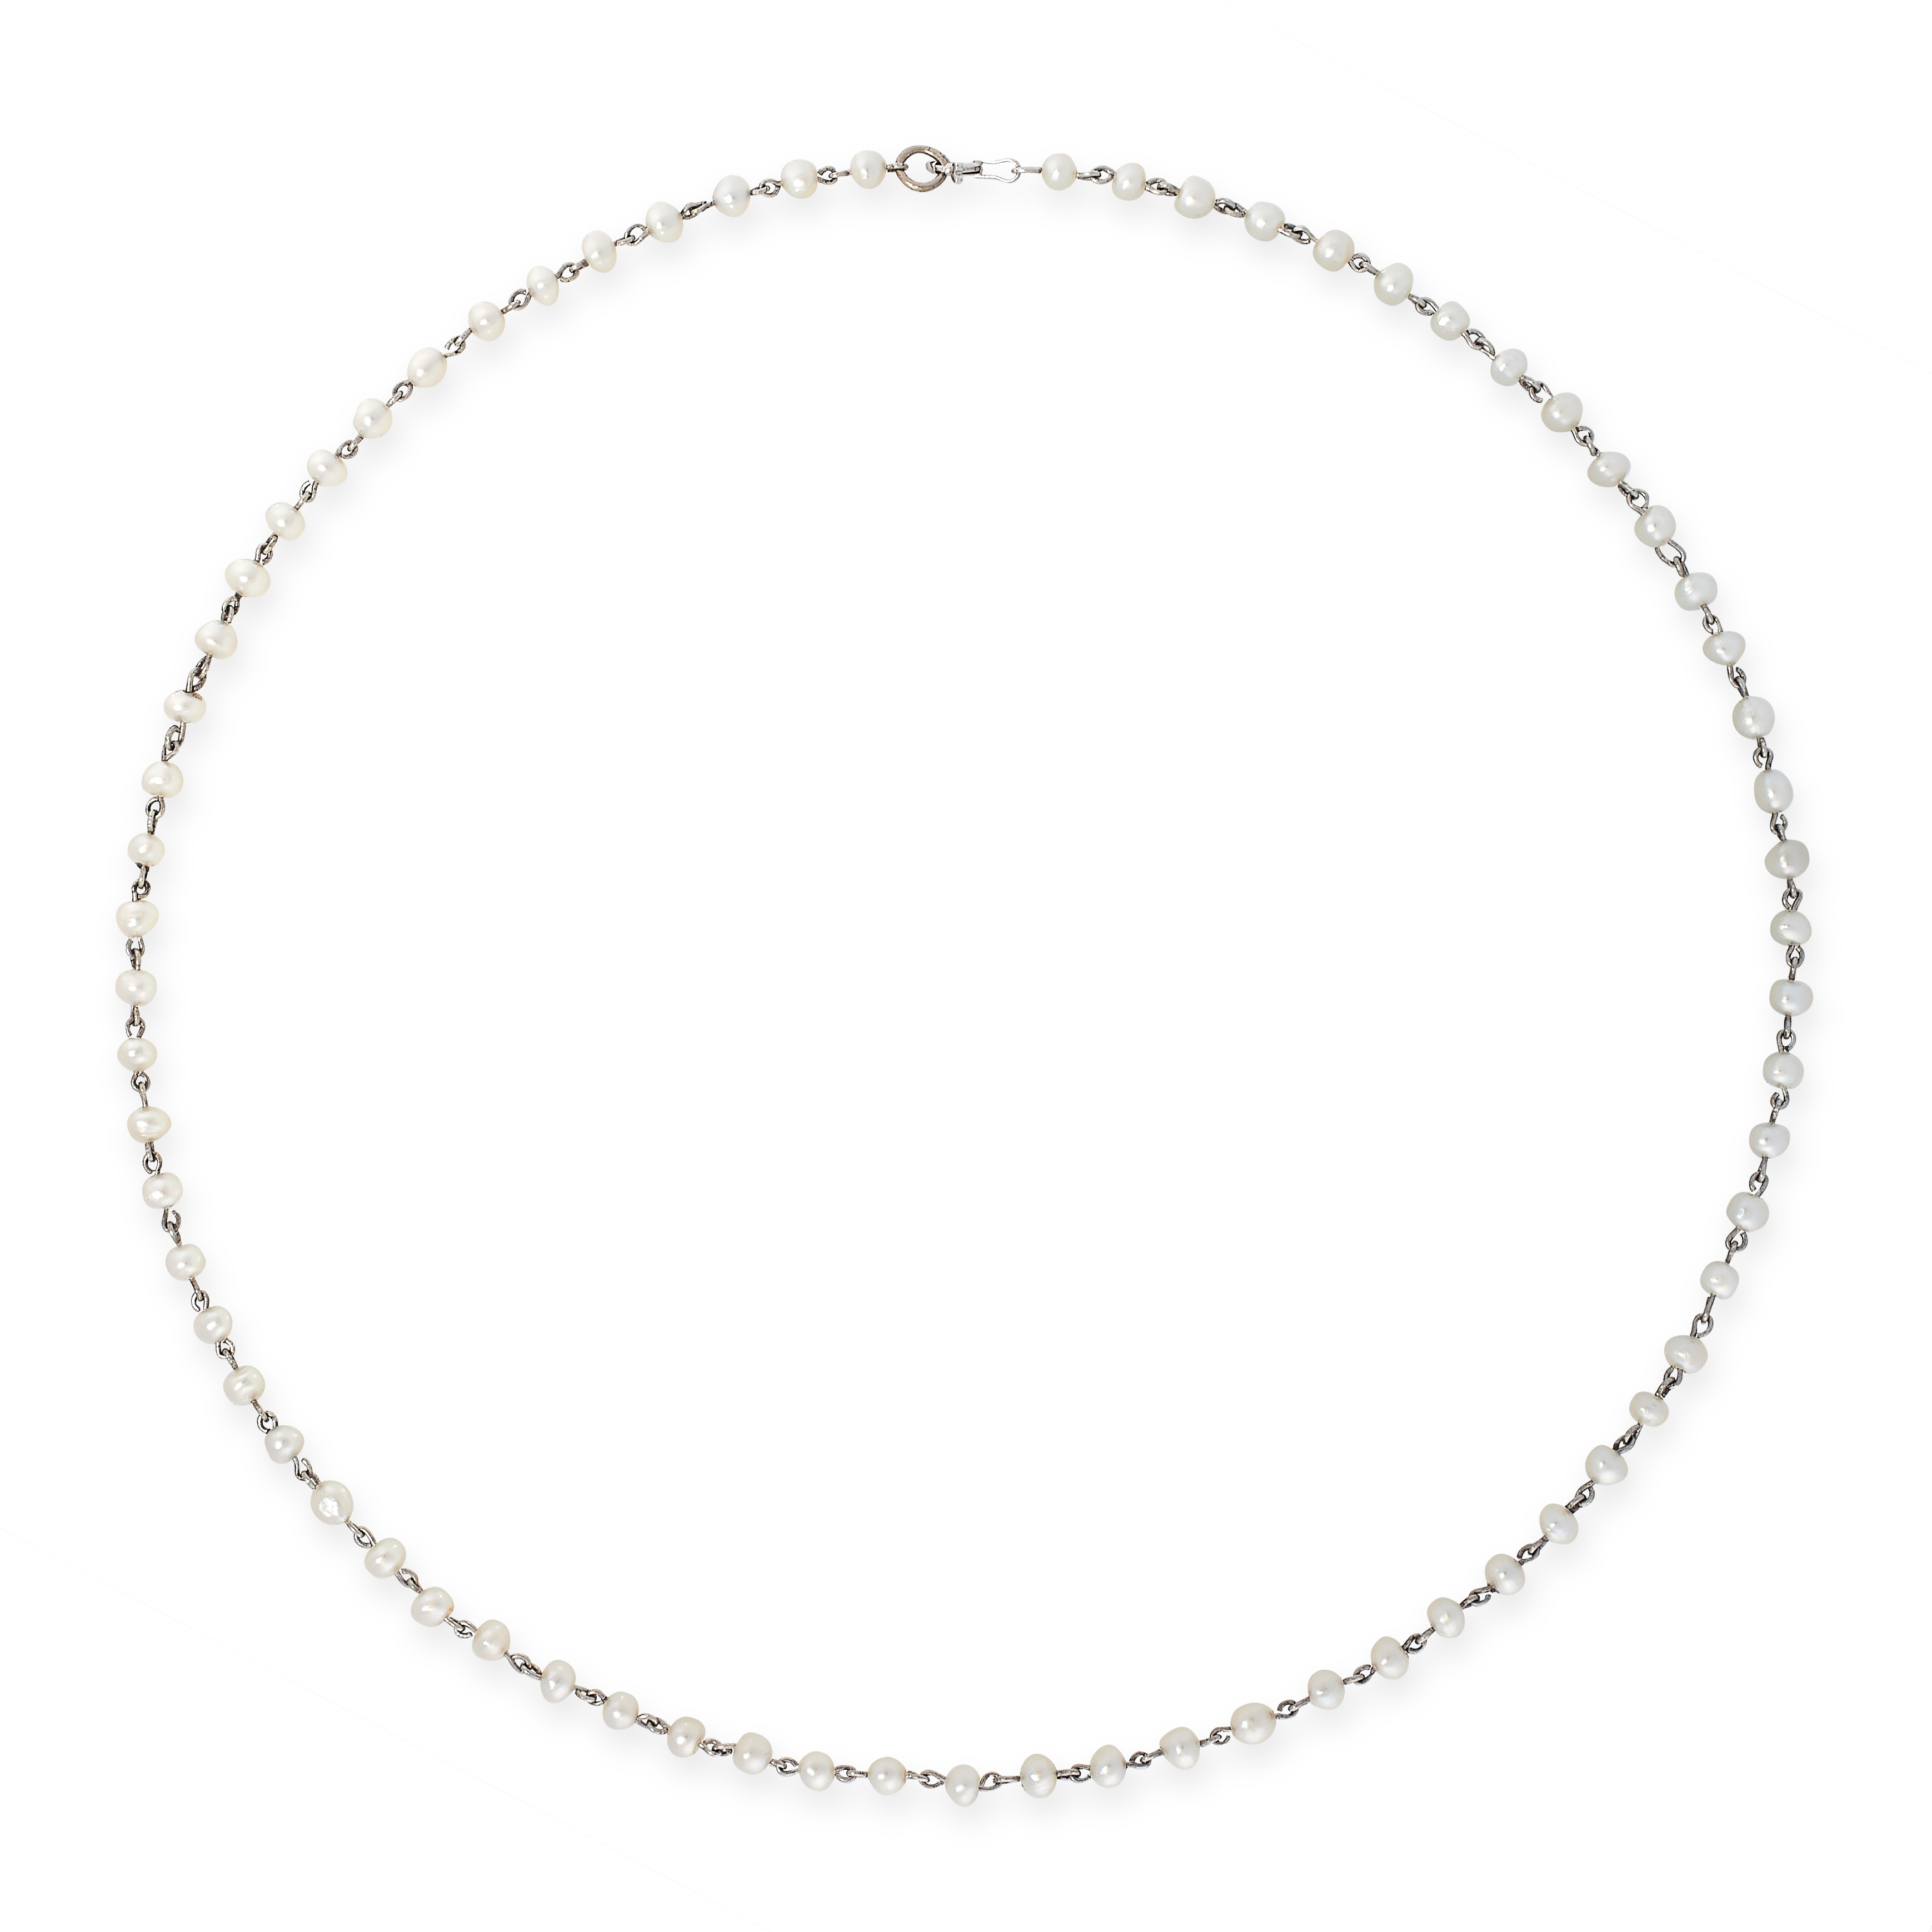 AN ANTIQUE PEARL CHAIN NECKLACE, EARLY 20TH CENTURY in platinum, formed of a single row of seventy